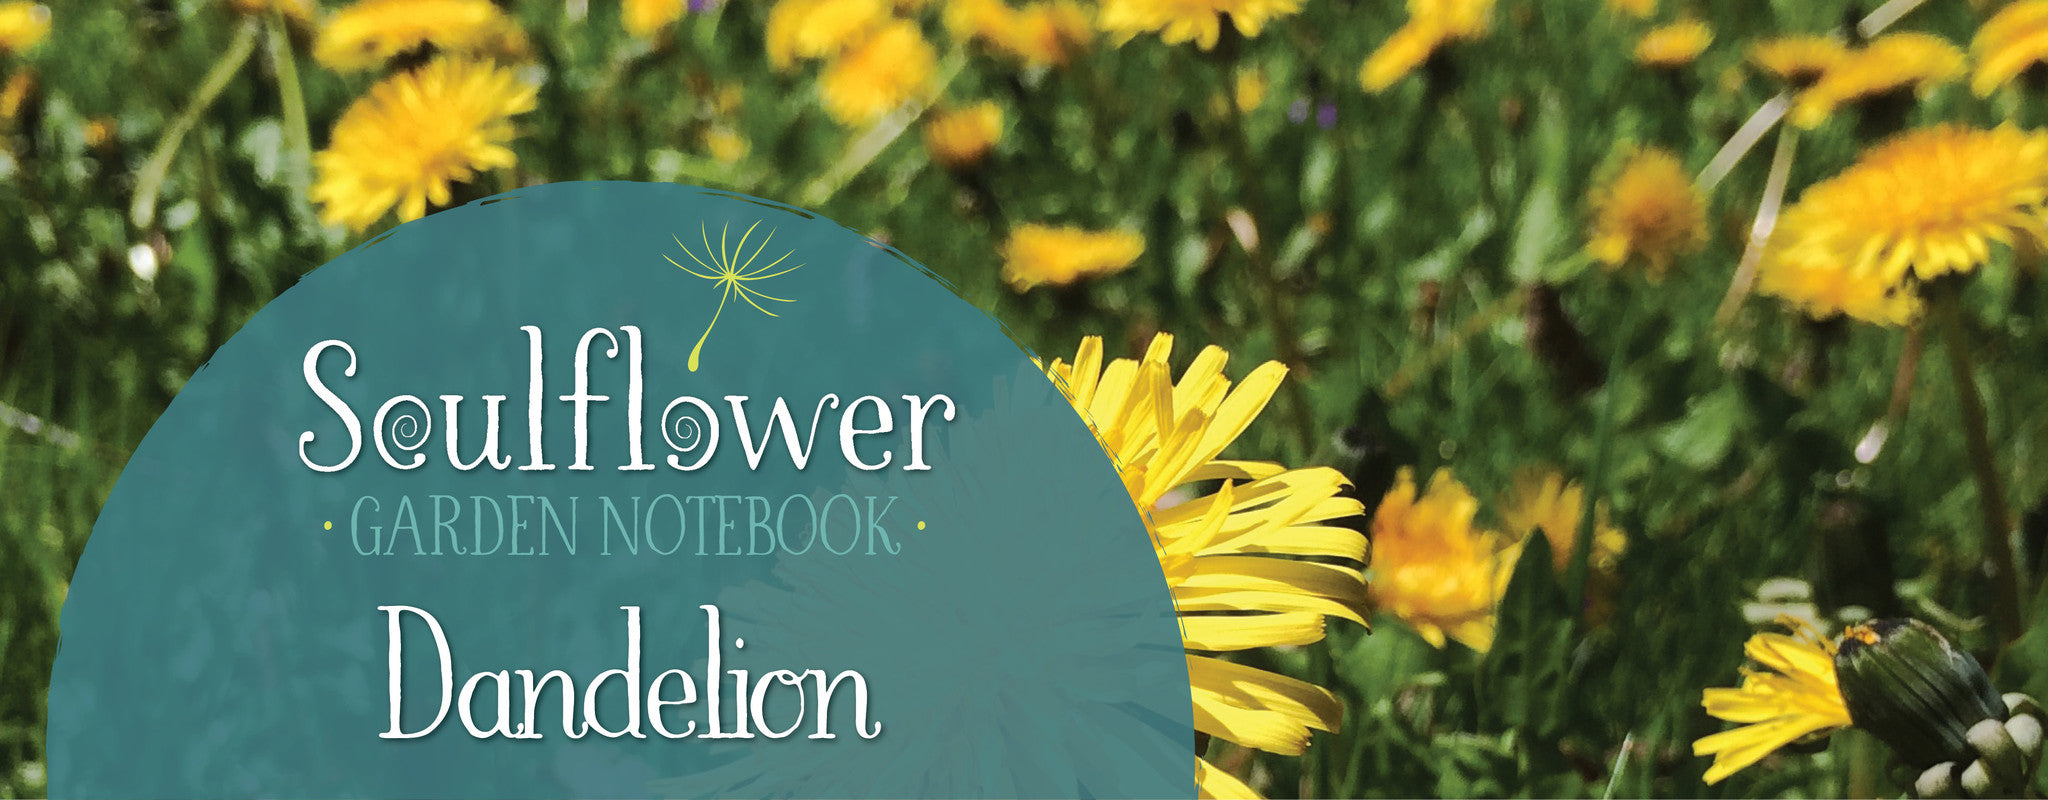 Conversation with Dandelion: The Great Detoxifier!